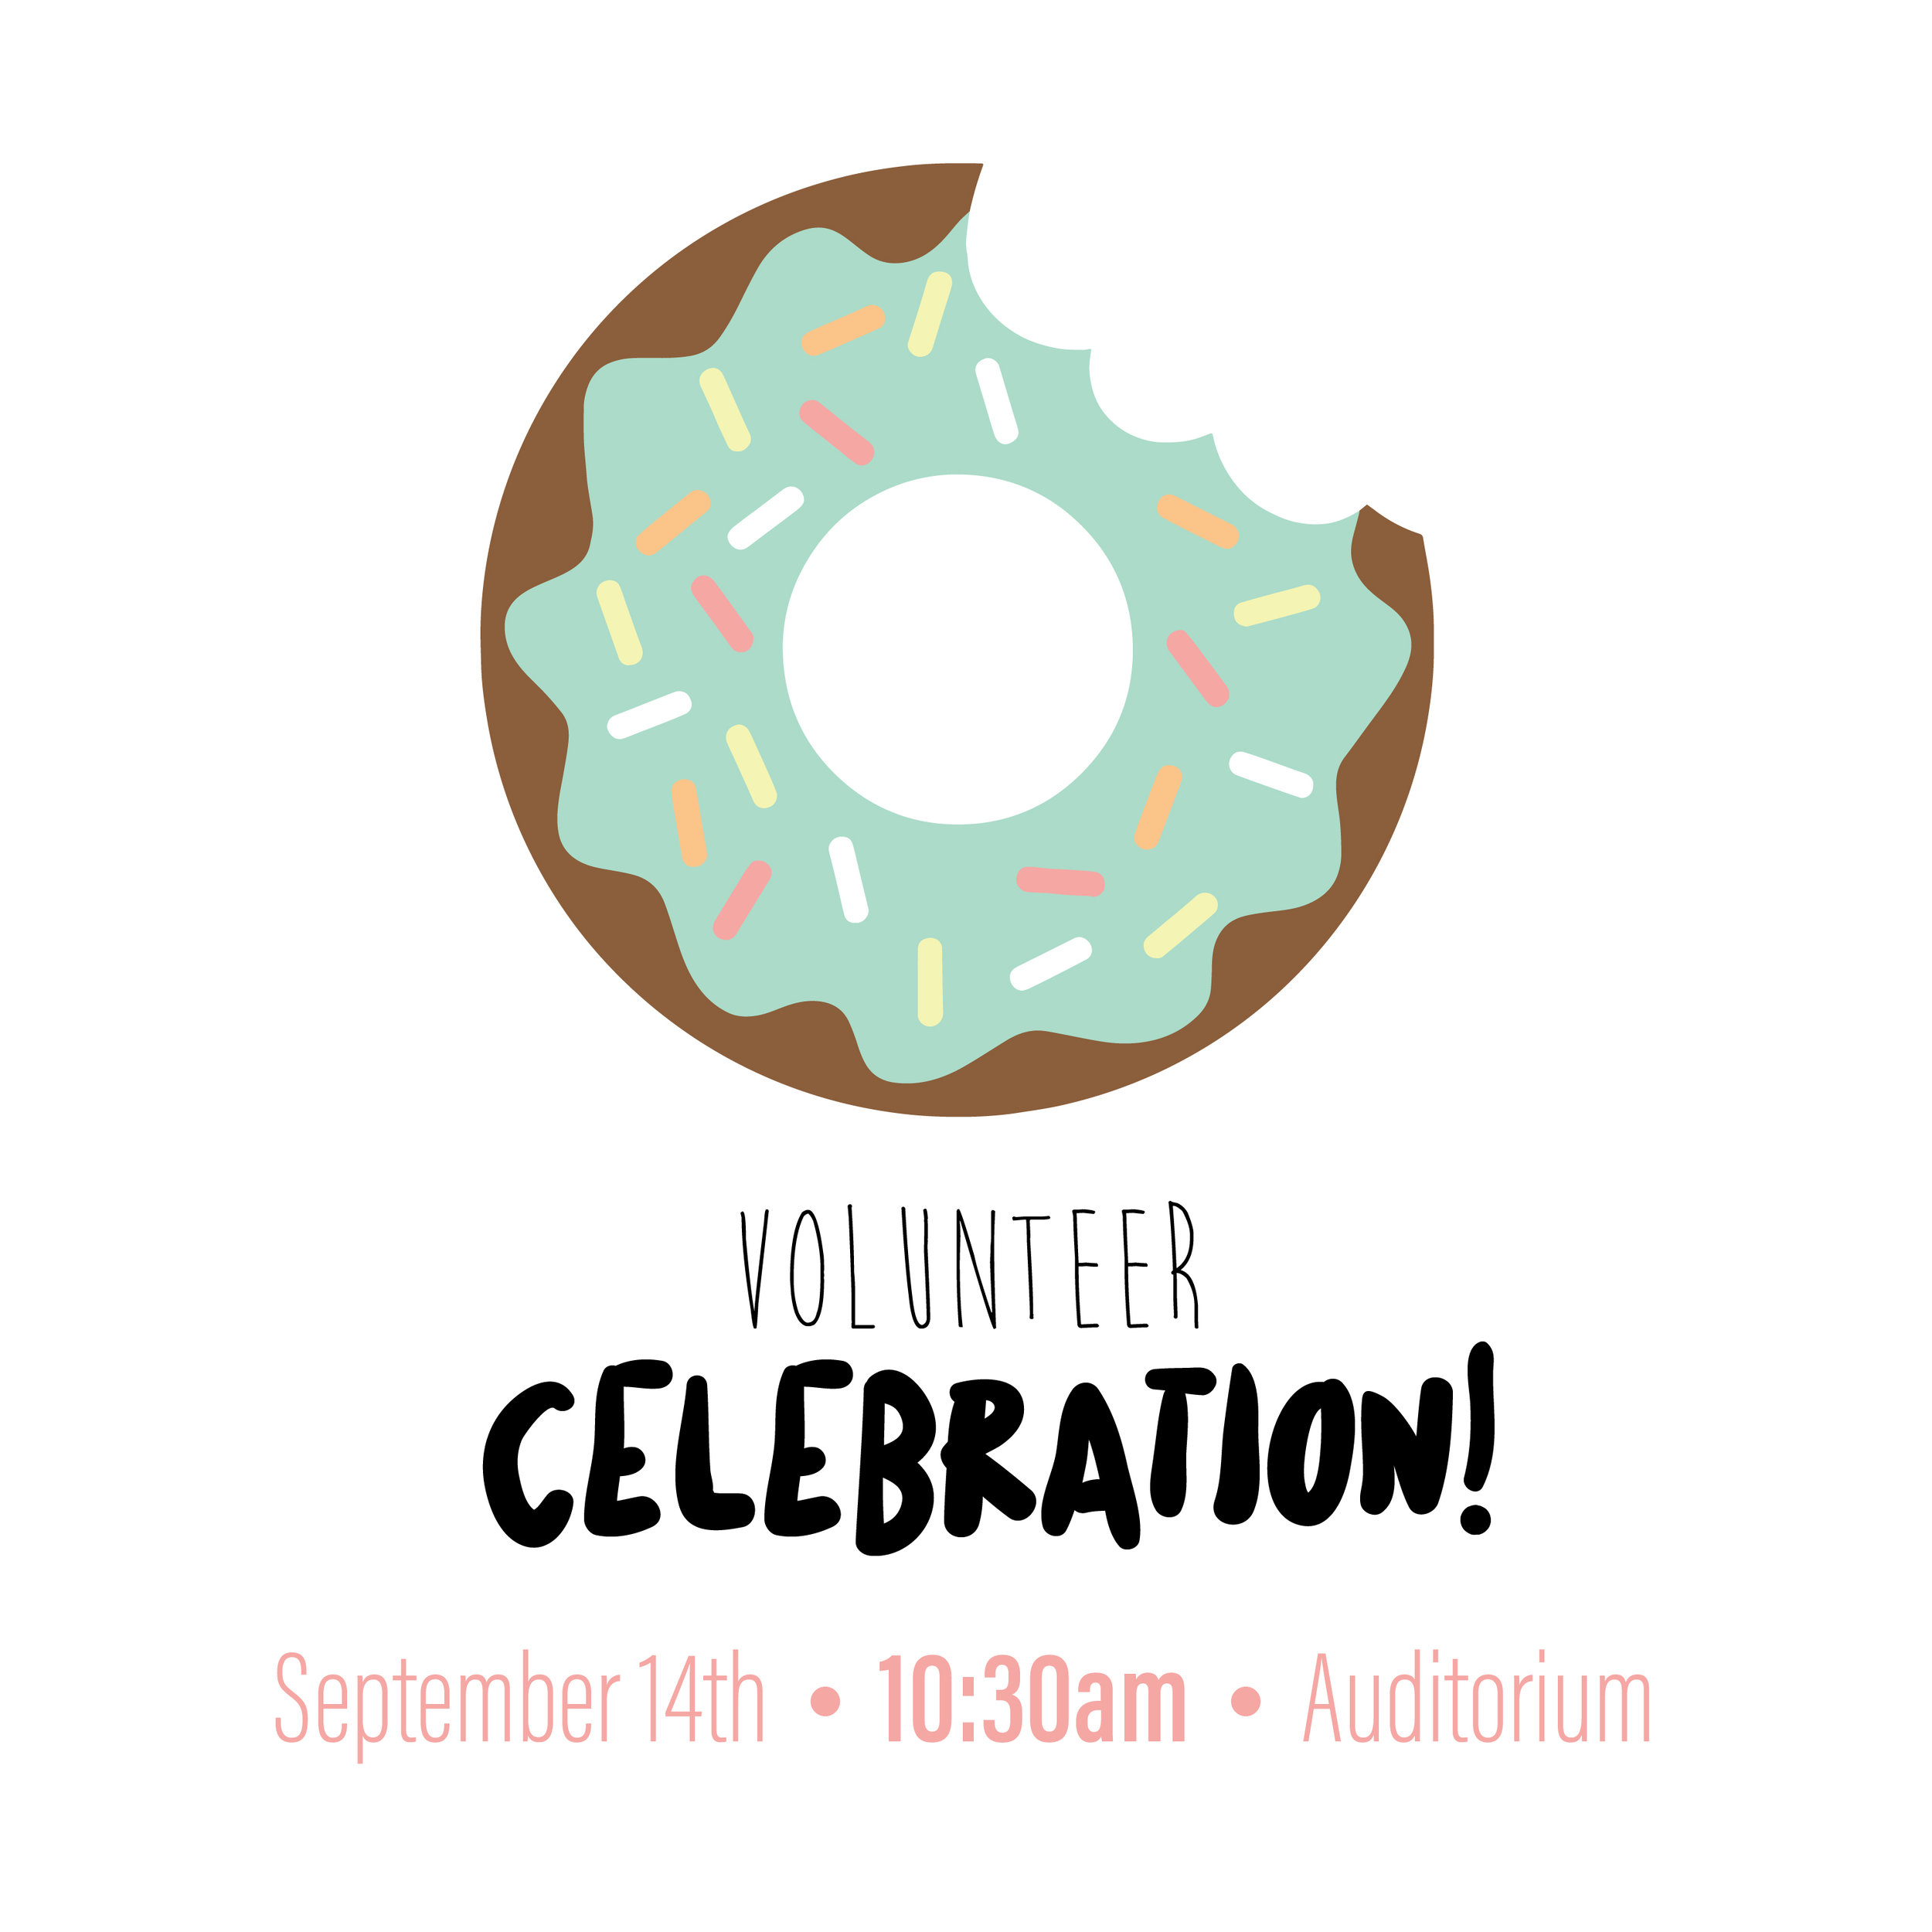 Volunteer Celebration-01.jpg